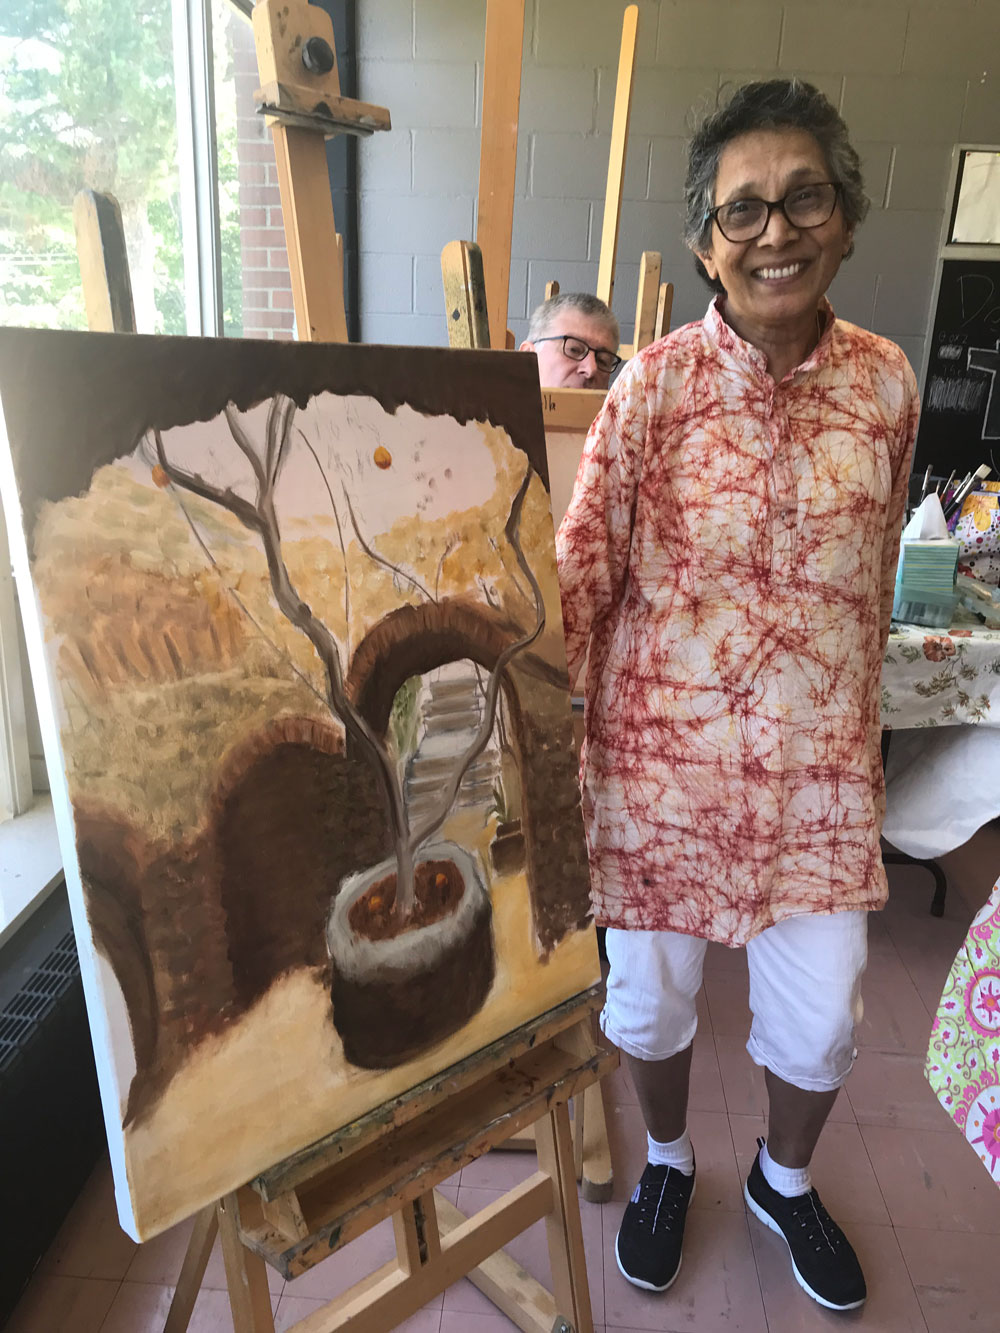 Meet our Artist Extraordinaire, Dr. Chaya Swami from India